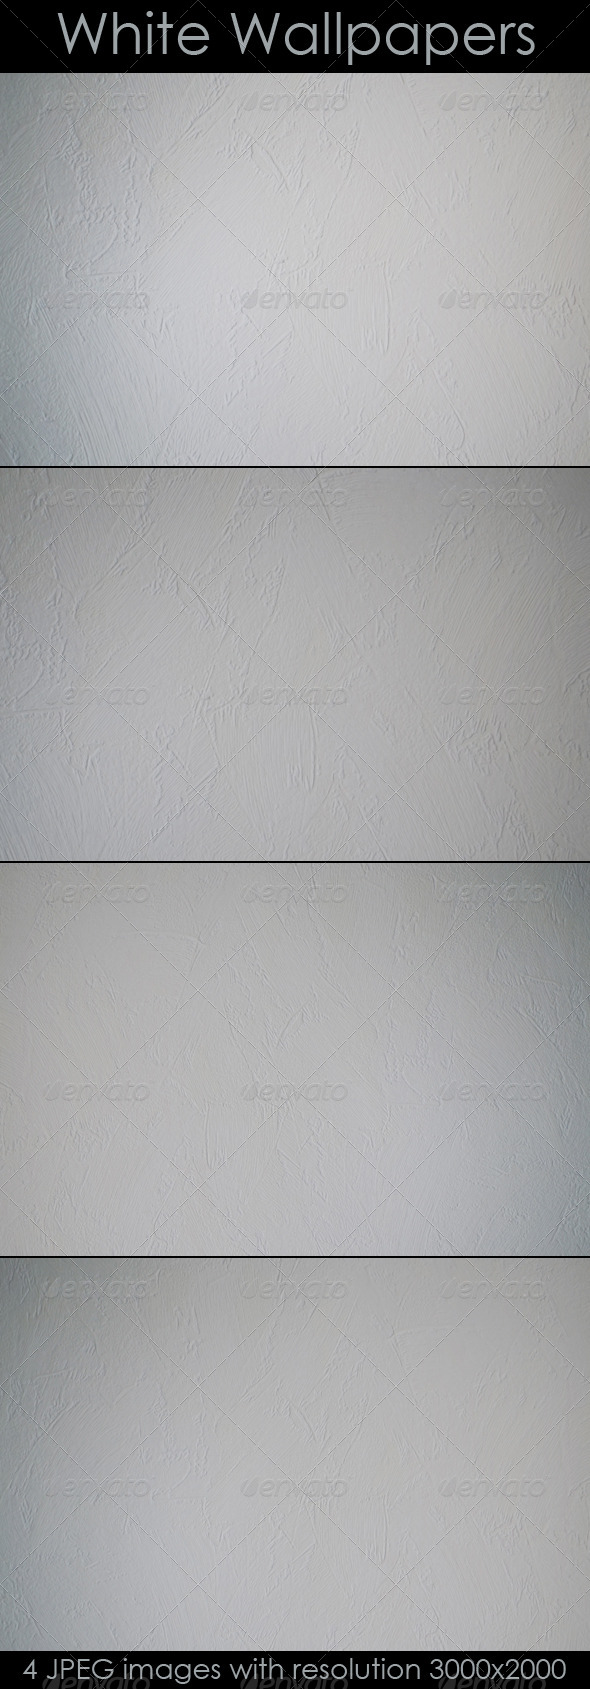 White Wallpapers - Miscellaneous Textures